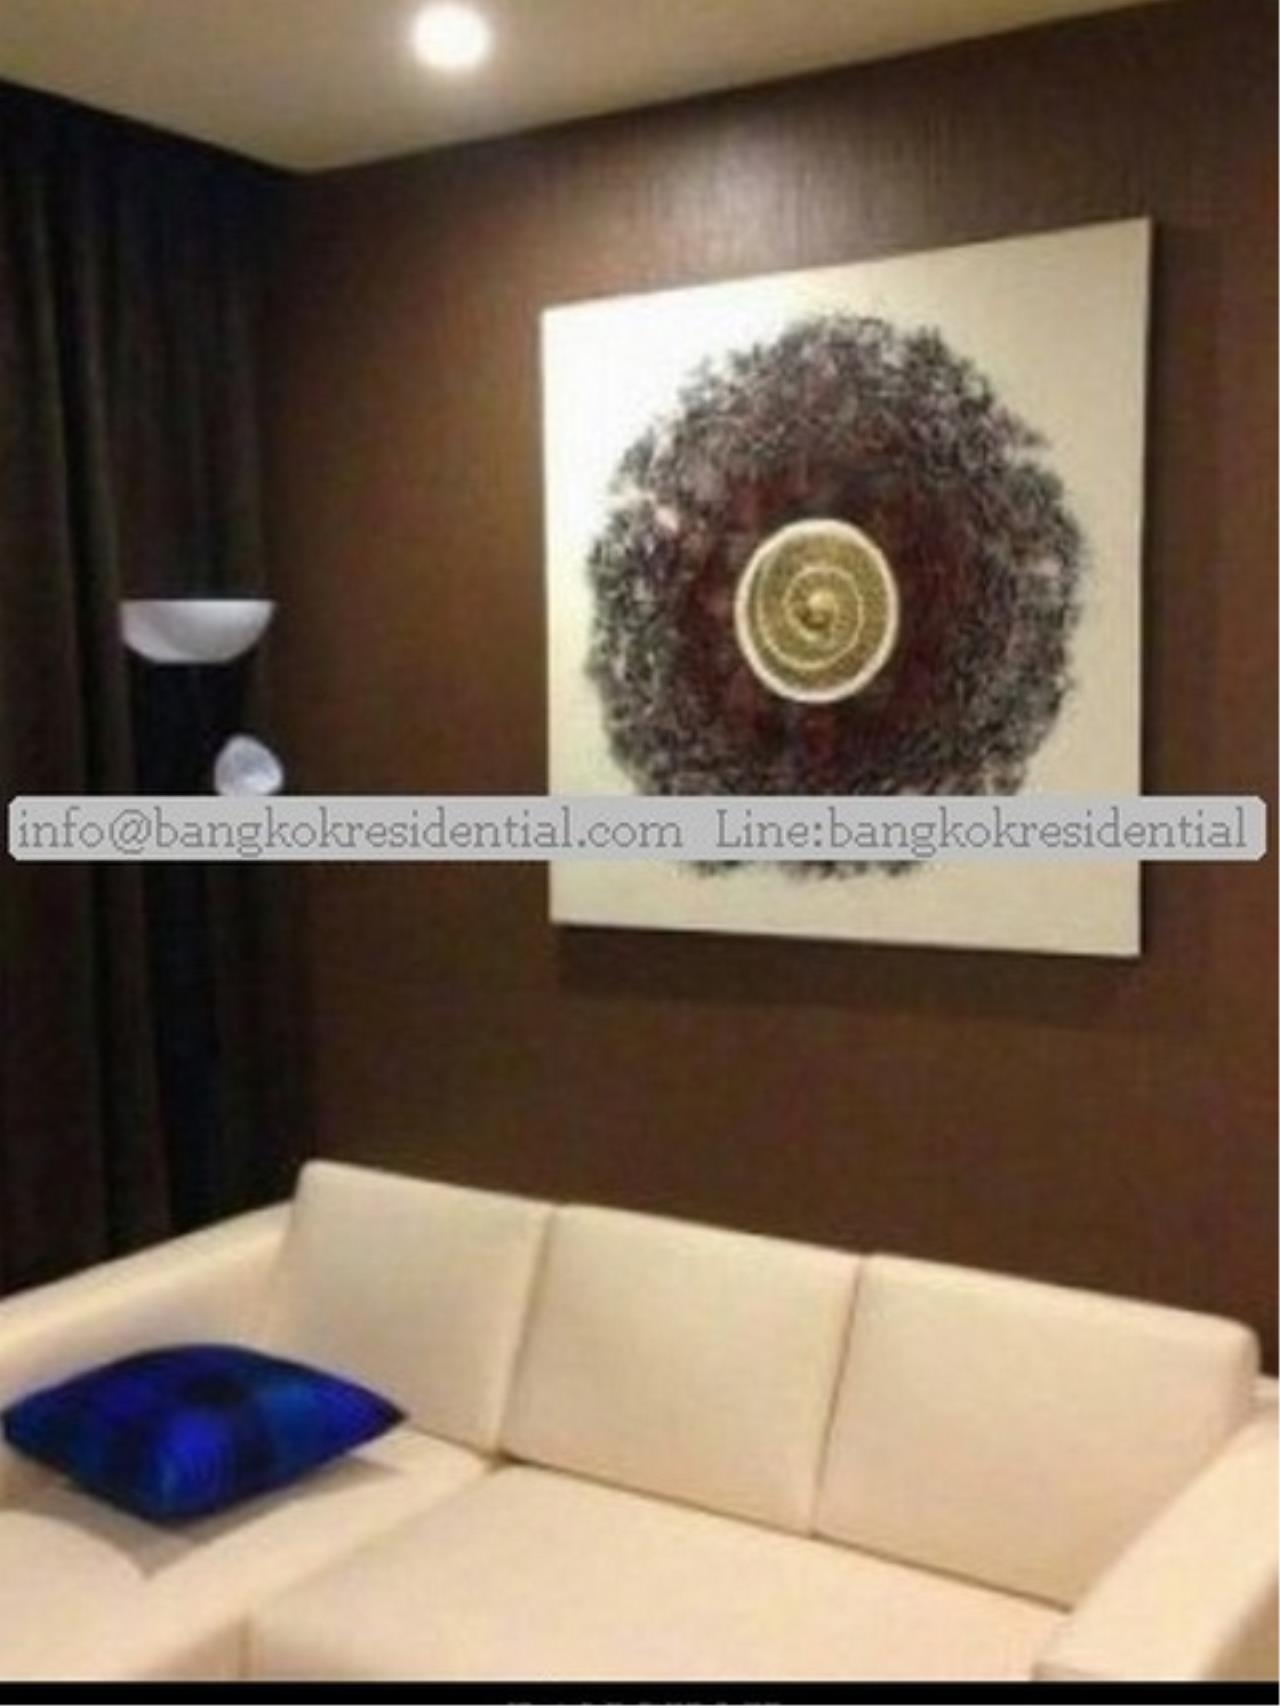 Bangkok Residential Agency's 2BR Collezio Sathorn-Pipat For Rent (BR3338CD) 4